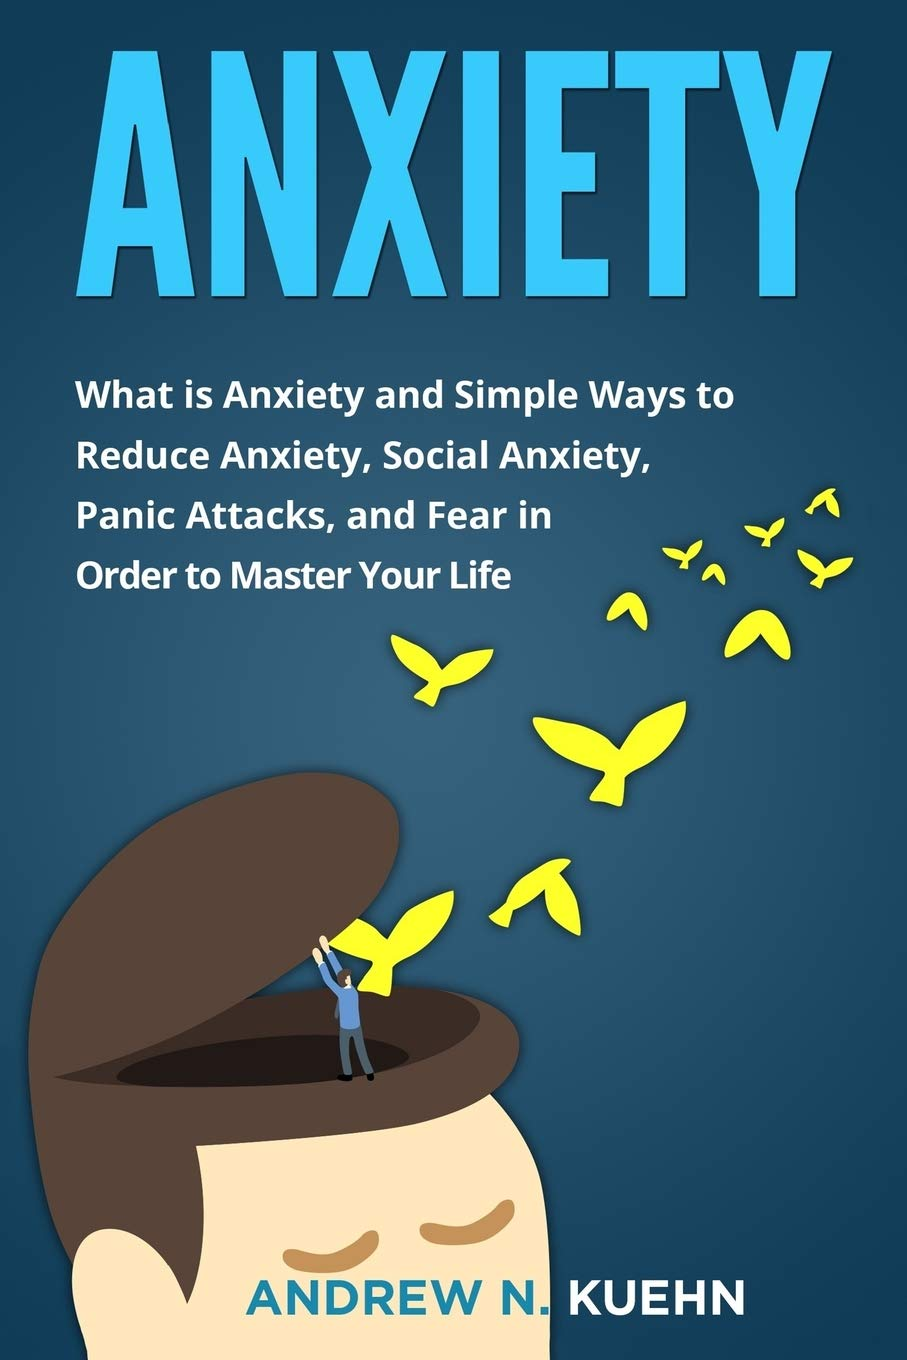 Download Anxiety: What is Anxiety and Simple Ways to Reduce Anxiety, Social Anxiety, Panic Attacks, and Fear in Order to Master Your Life PDF